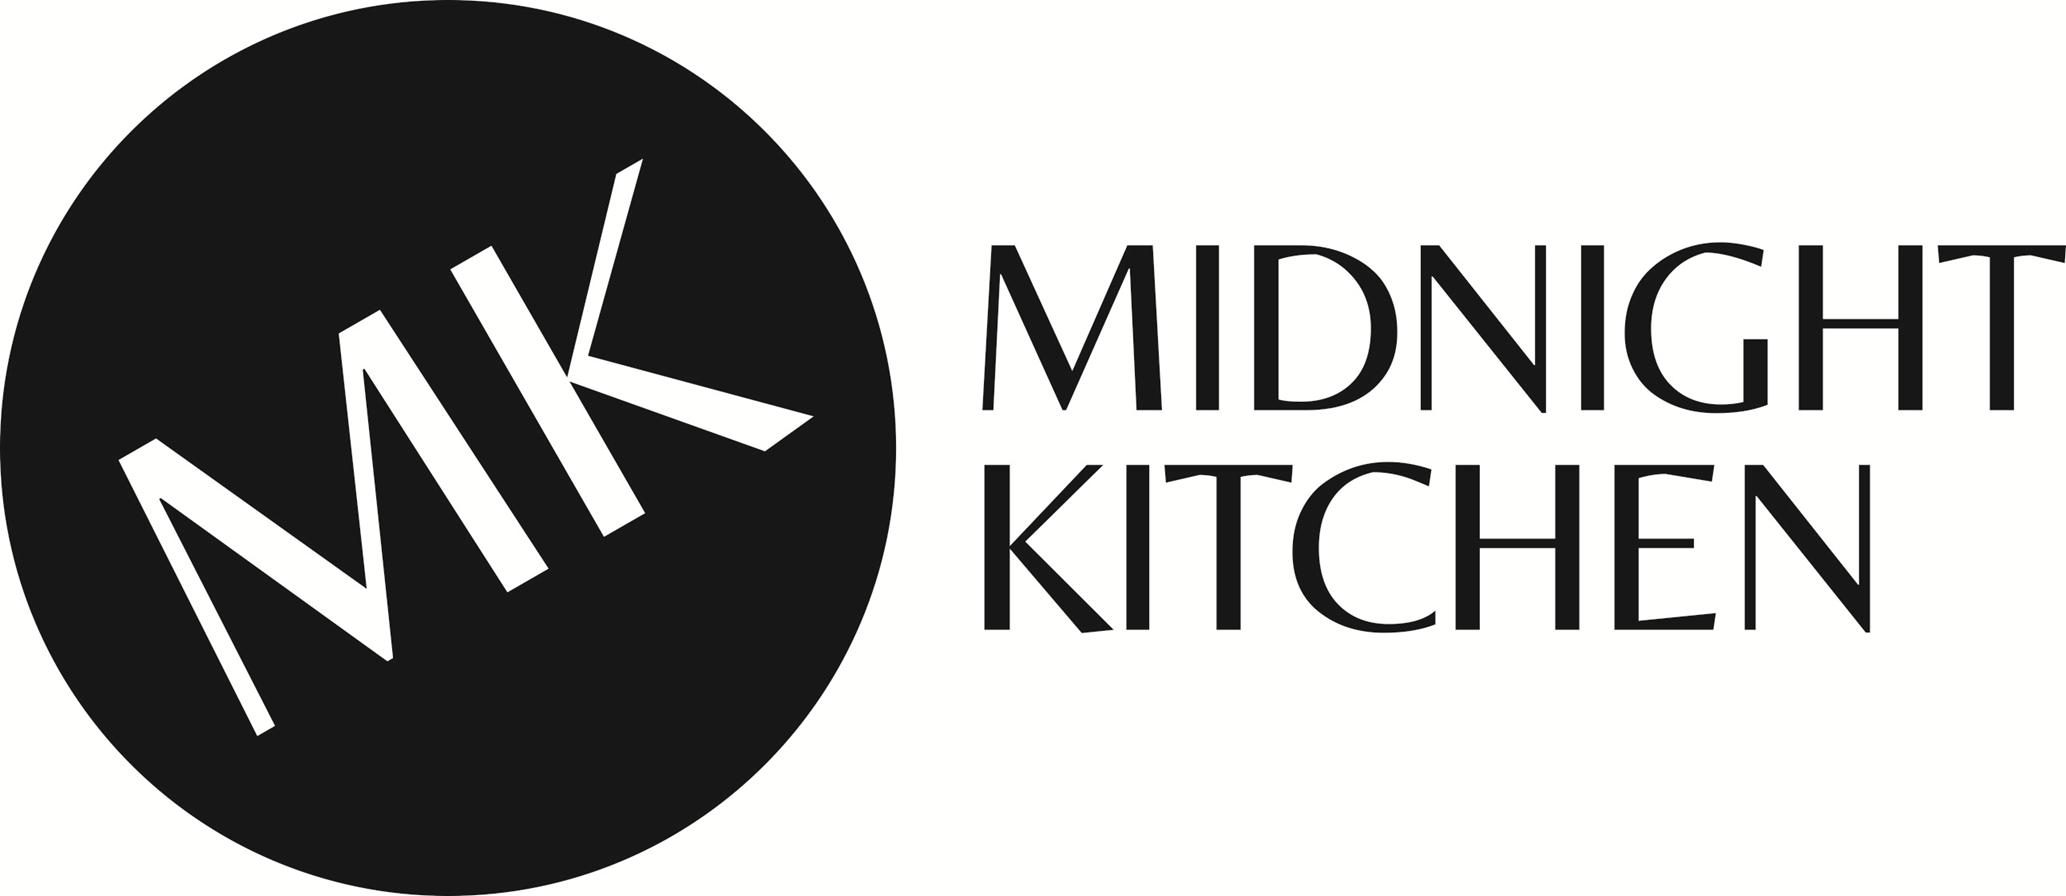 Midnight Kitchen Catering Whidbey Island